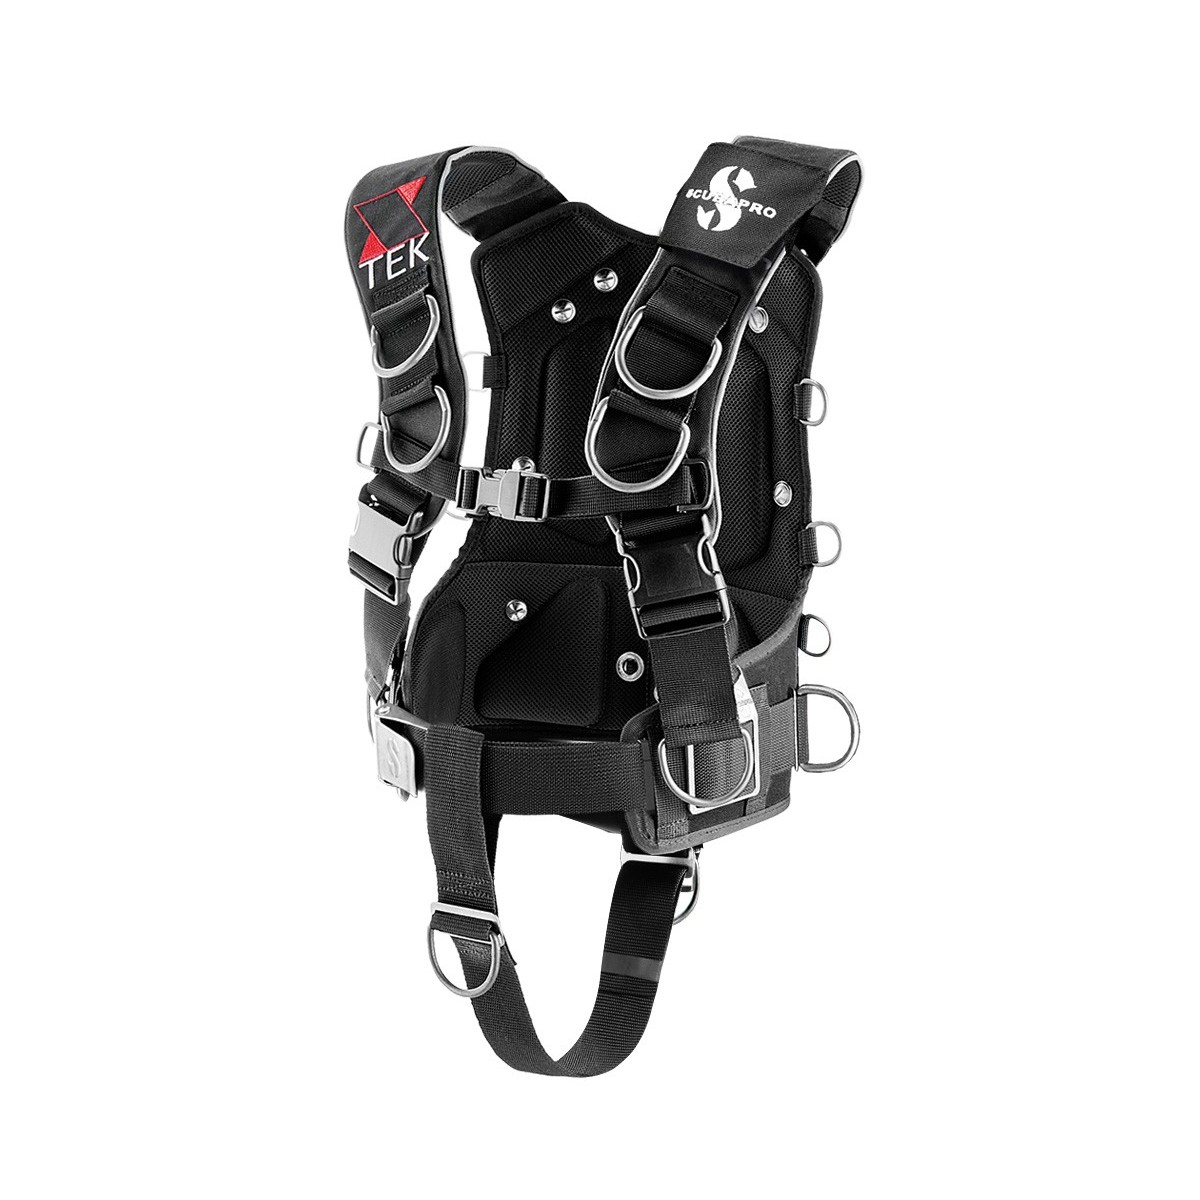 Scubapro X-TEK FORM HARNESS Technical